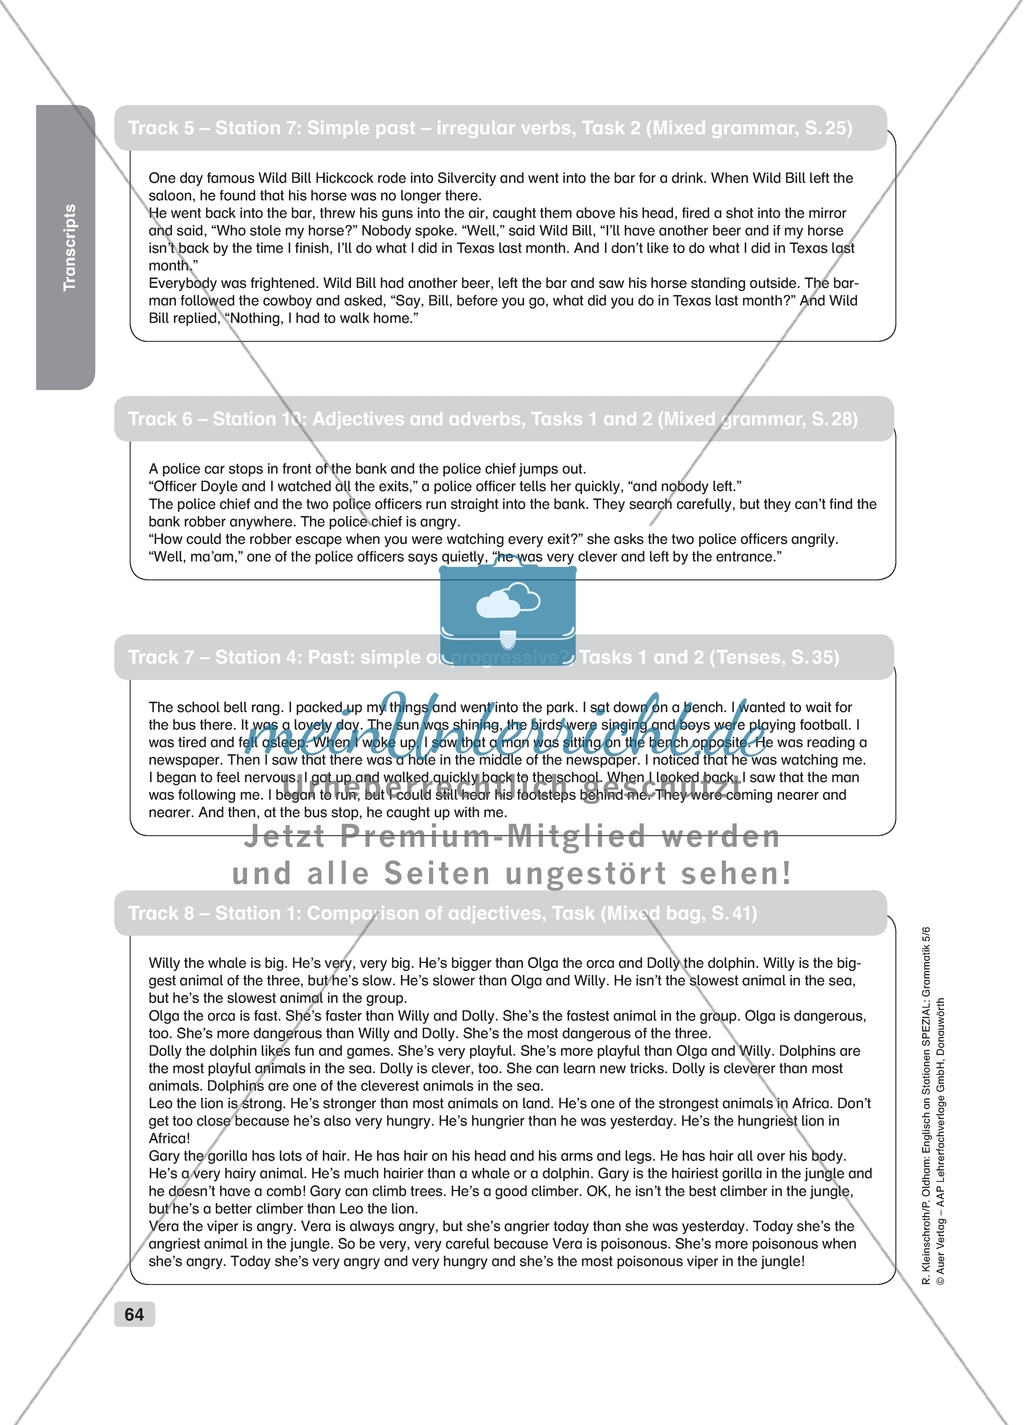 Grammar Adjectives And Adverbs Worksheets And Solutions